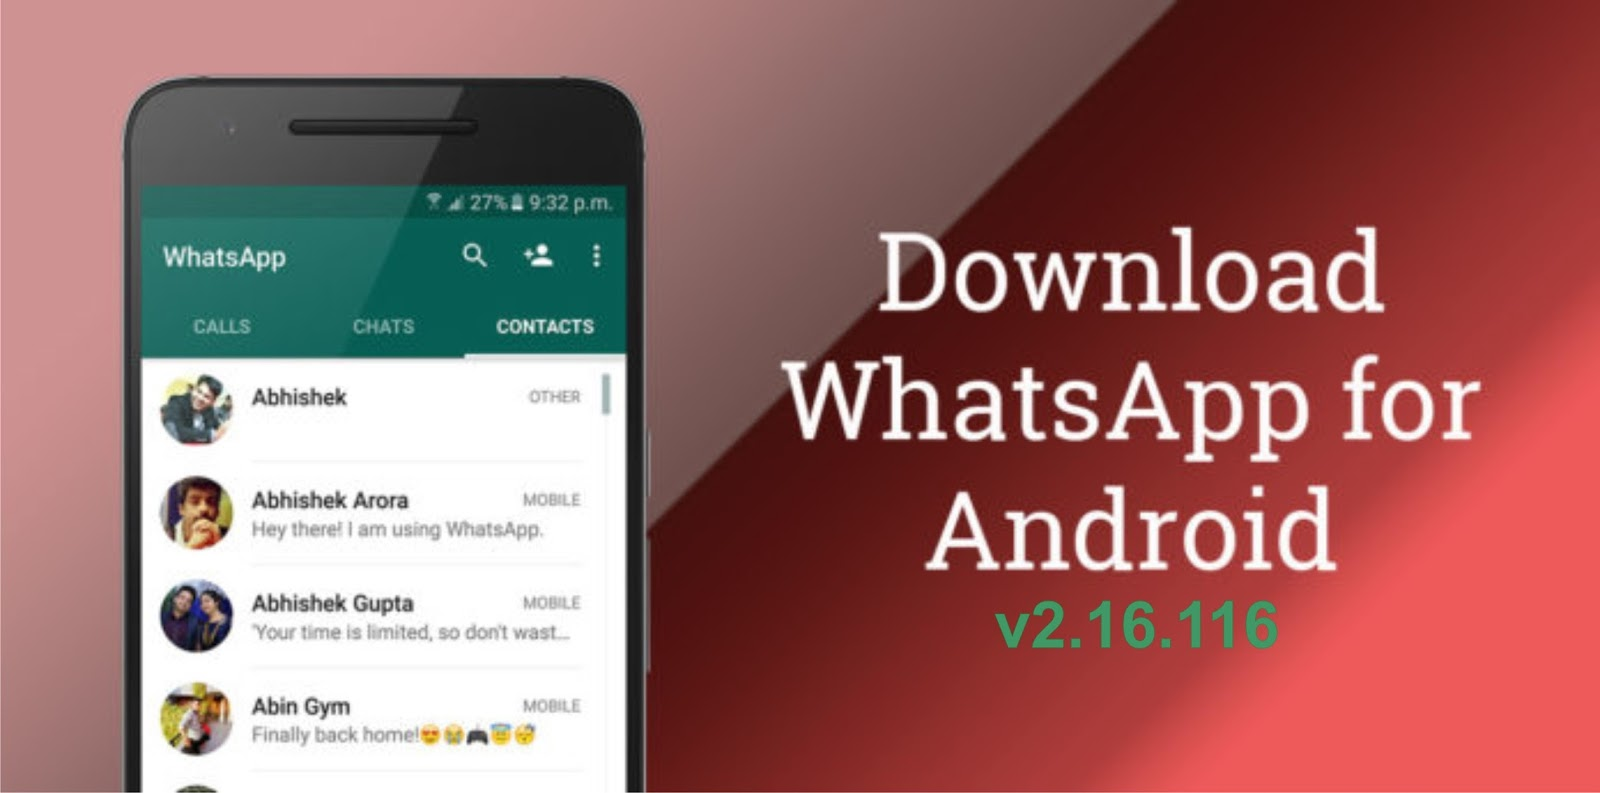 Telechargement whatsapp messenger for nokia - You Are Downloading Whatsapp Messenger Latest Apk V2 16 116 451200 Whatsapp Messenger Is A Smartphone Messenger Available For Android And Other